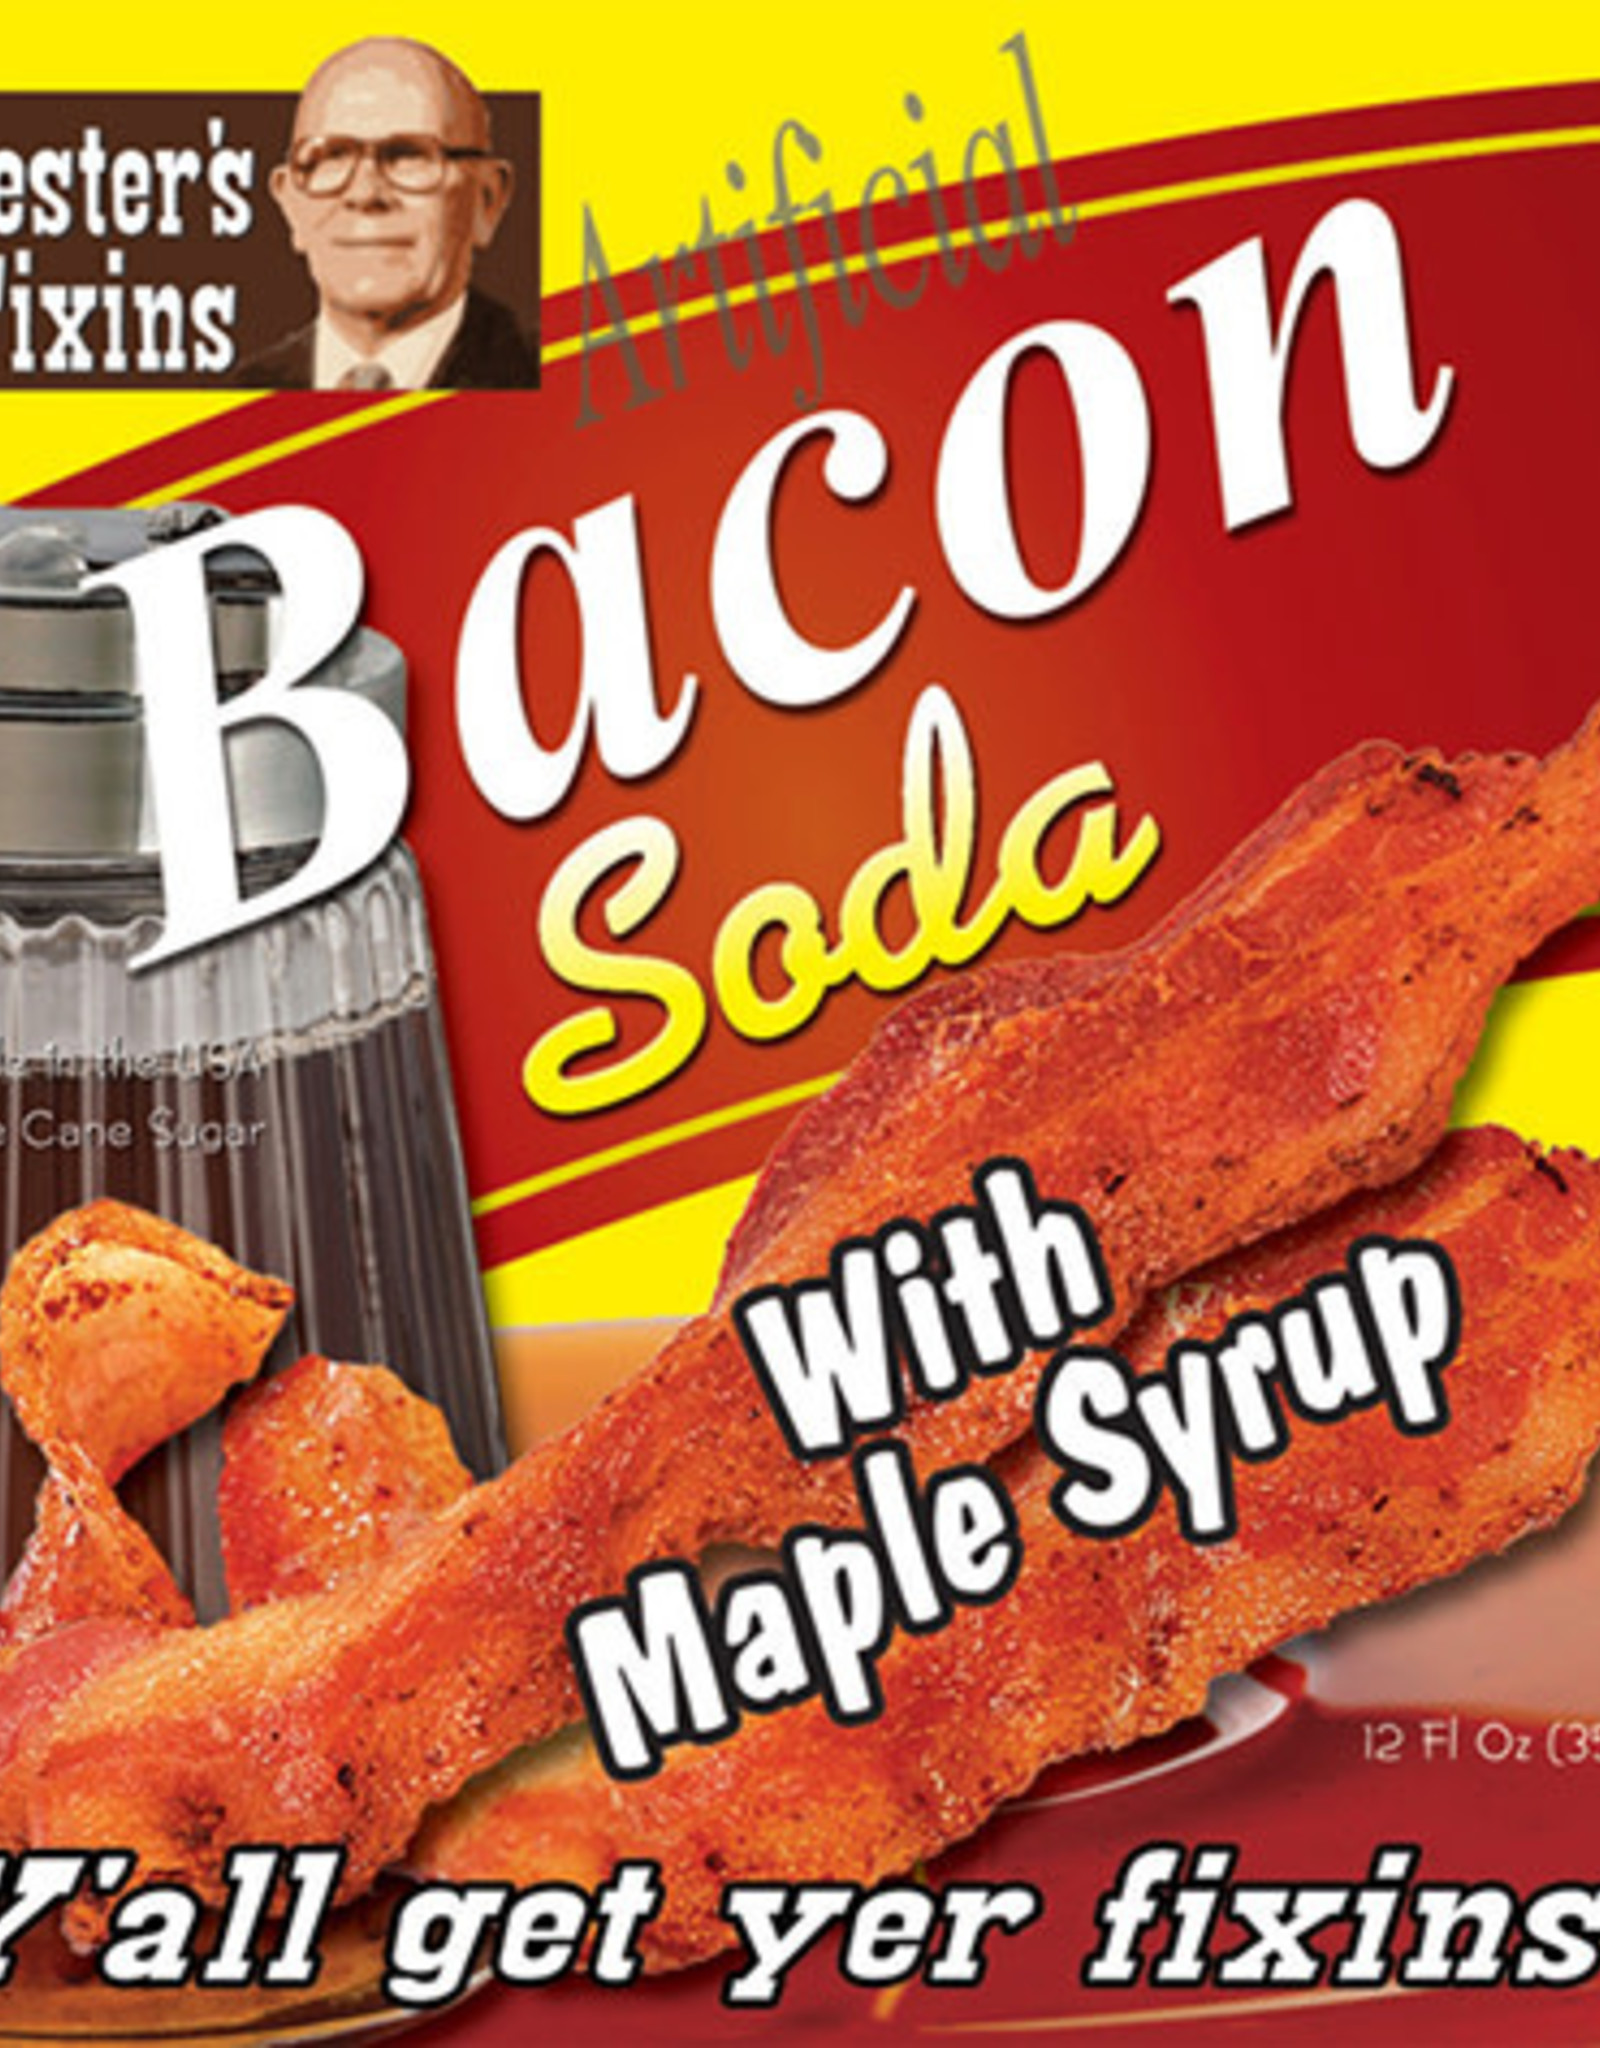 Rocket Fizz Lester's Fixins Bacon with Maple Syrup Soda